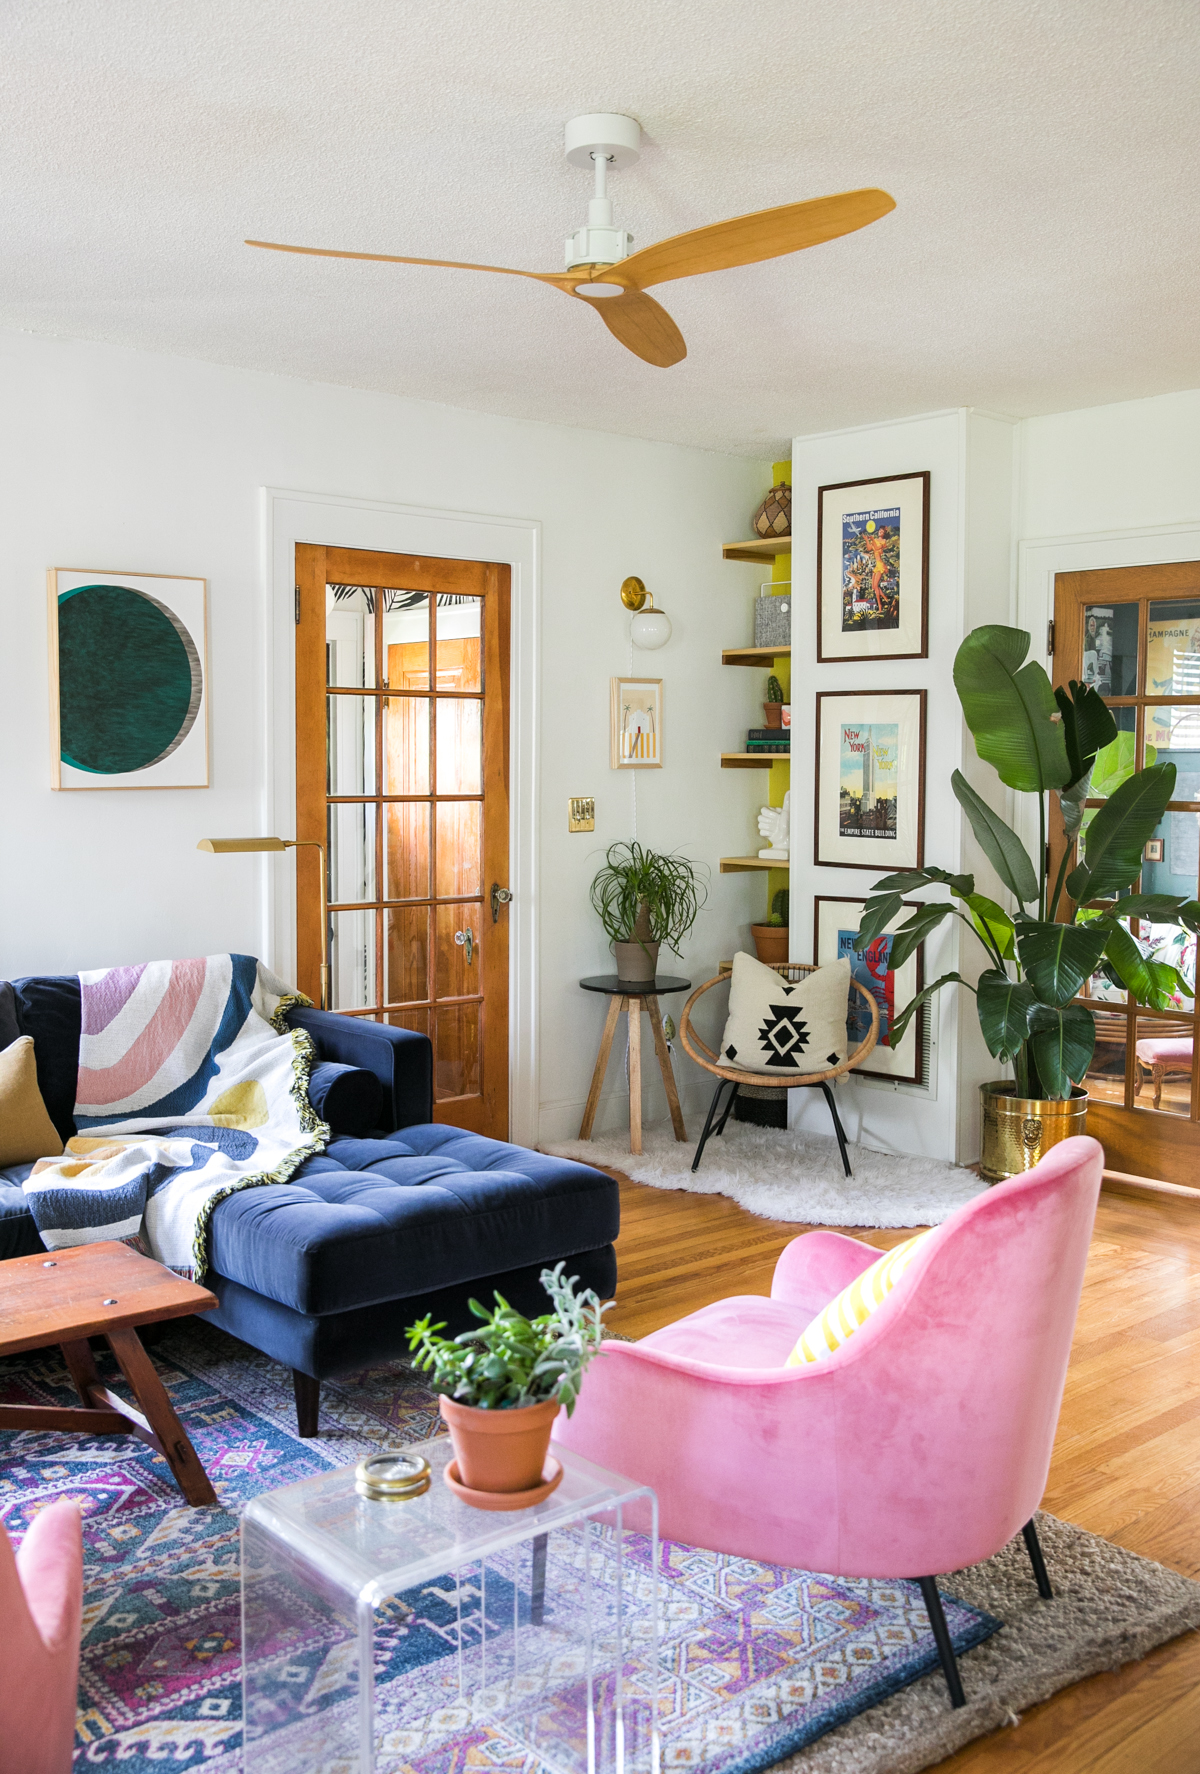 The Glamazon Home Tour | Summer 2019 | Boho Modern Eclectic Glam | Home Design | House Inspiration | Jessica Brigham | Magazine Ready for Life